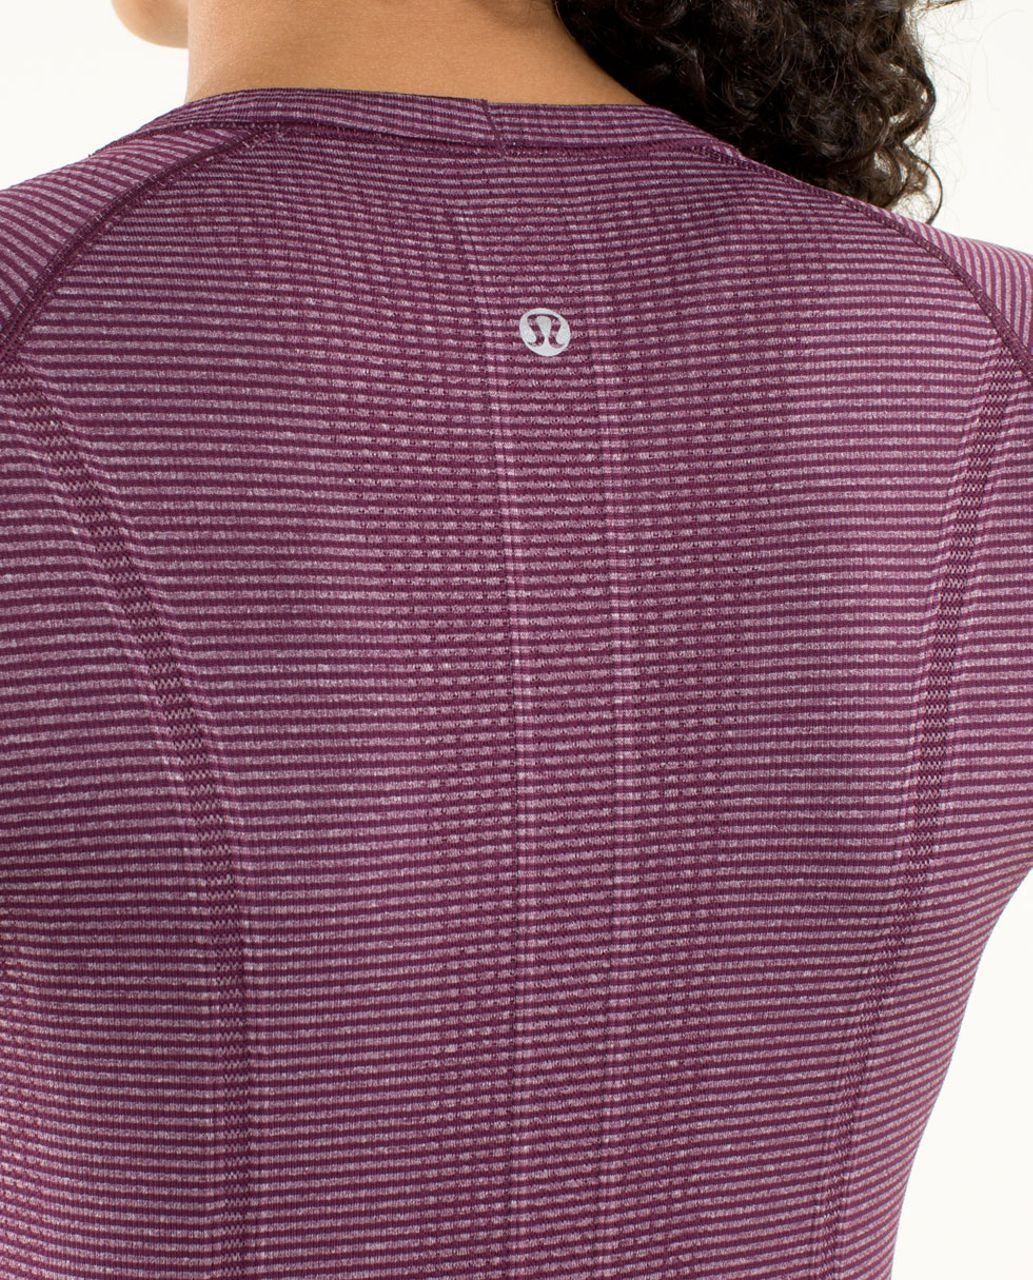 Lululemon Run:  Swiftly Tech Long Sleeve - Heathered Plum